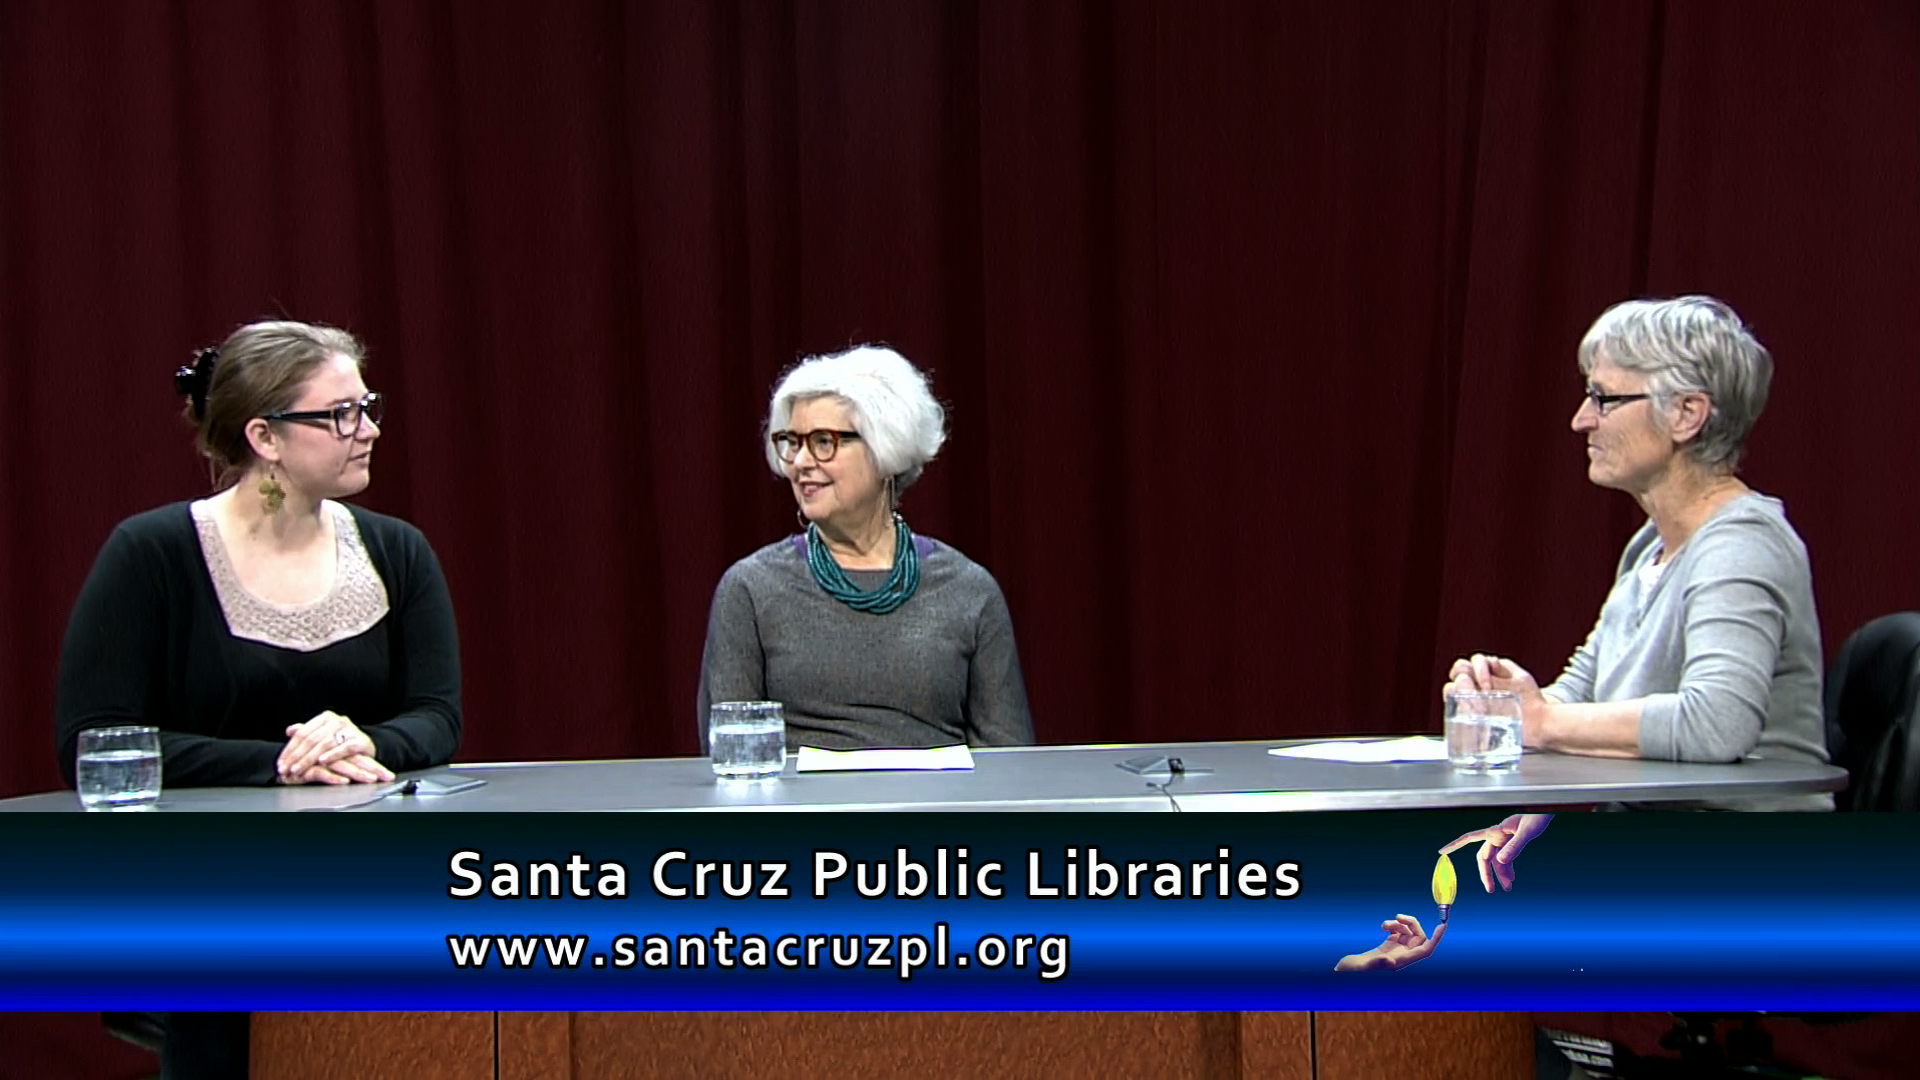 Santa Cruz Public Libraries Programs